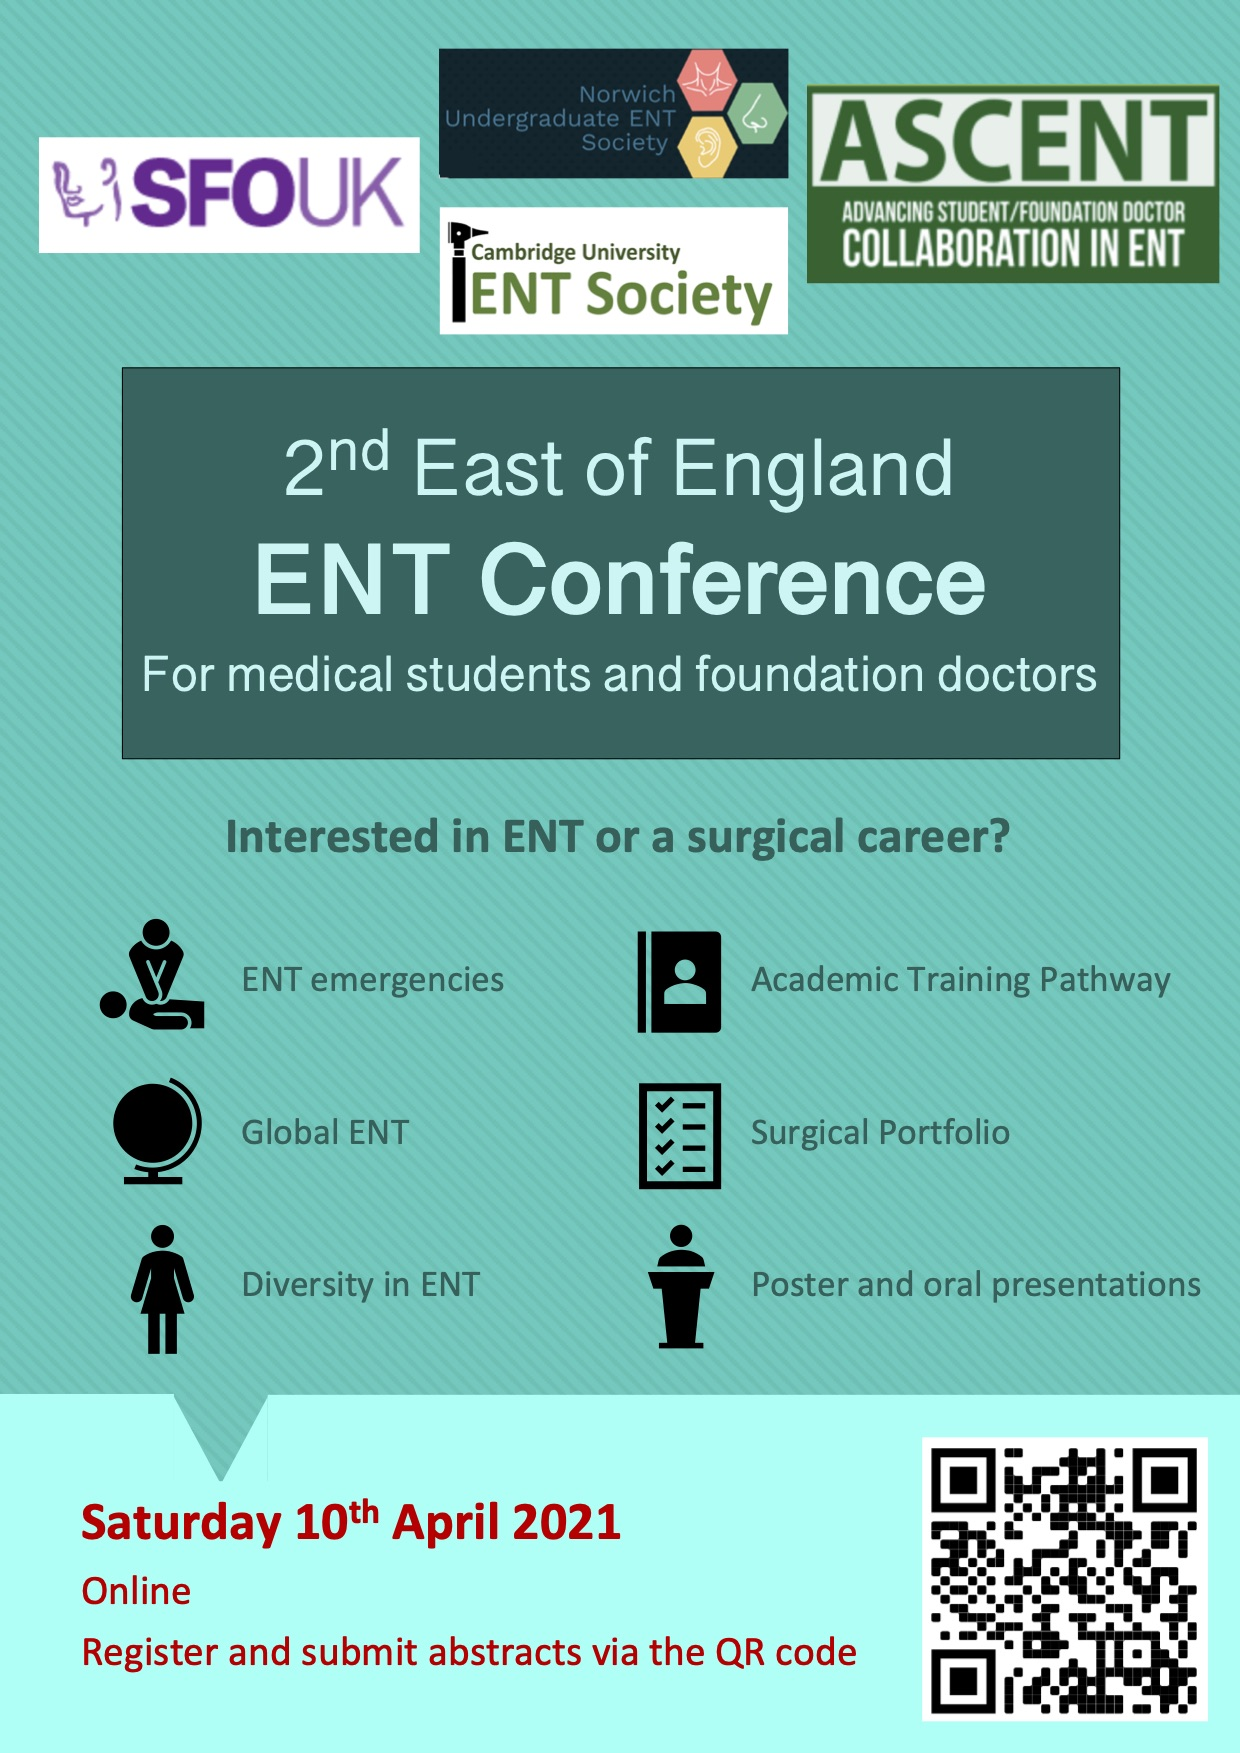 2nd East of England ENT Conference for medical students and foundation doctors 2021